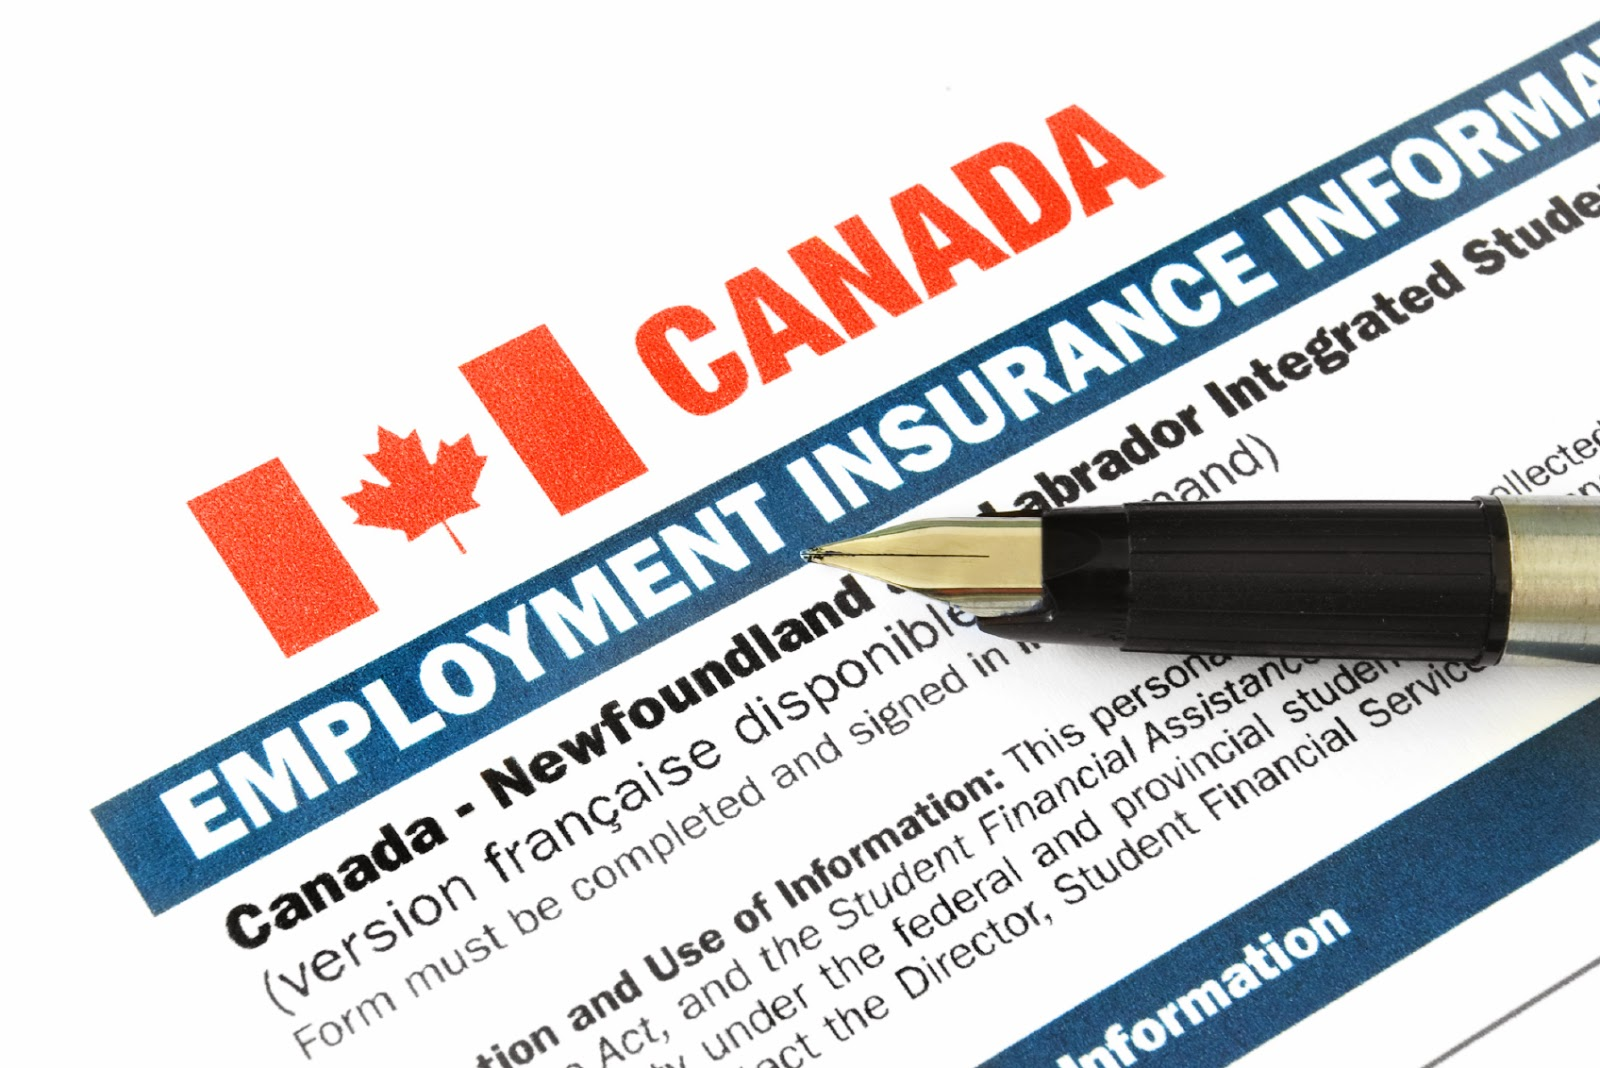 wait unemployment Benefits eligibility administers the unemployment insurance it is very important that you call to file your weekly claim as soon as possible and not wait.